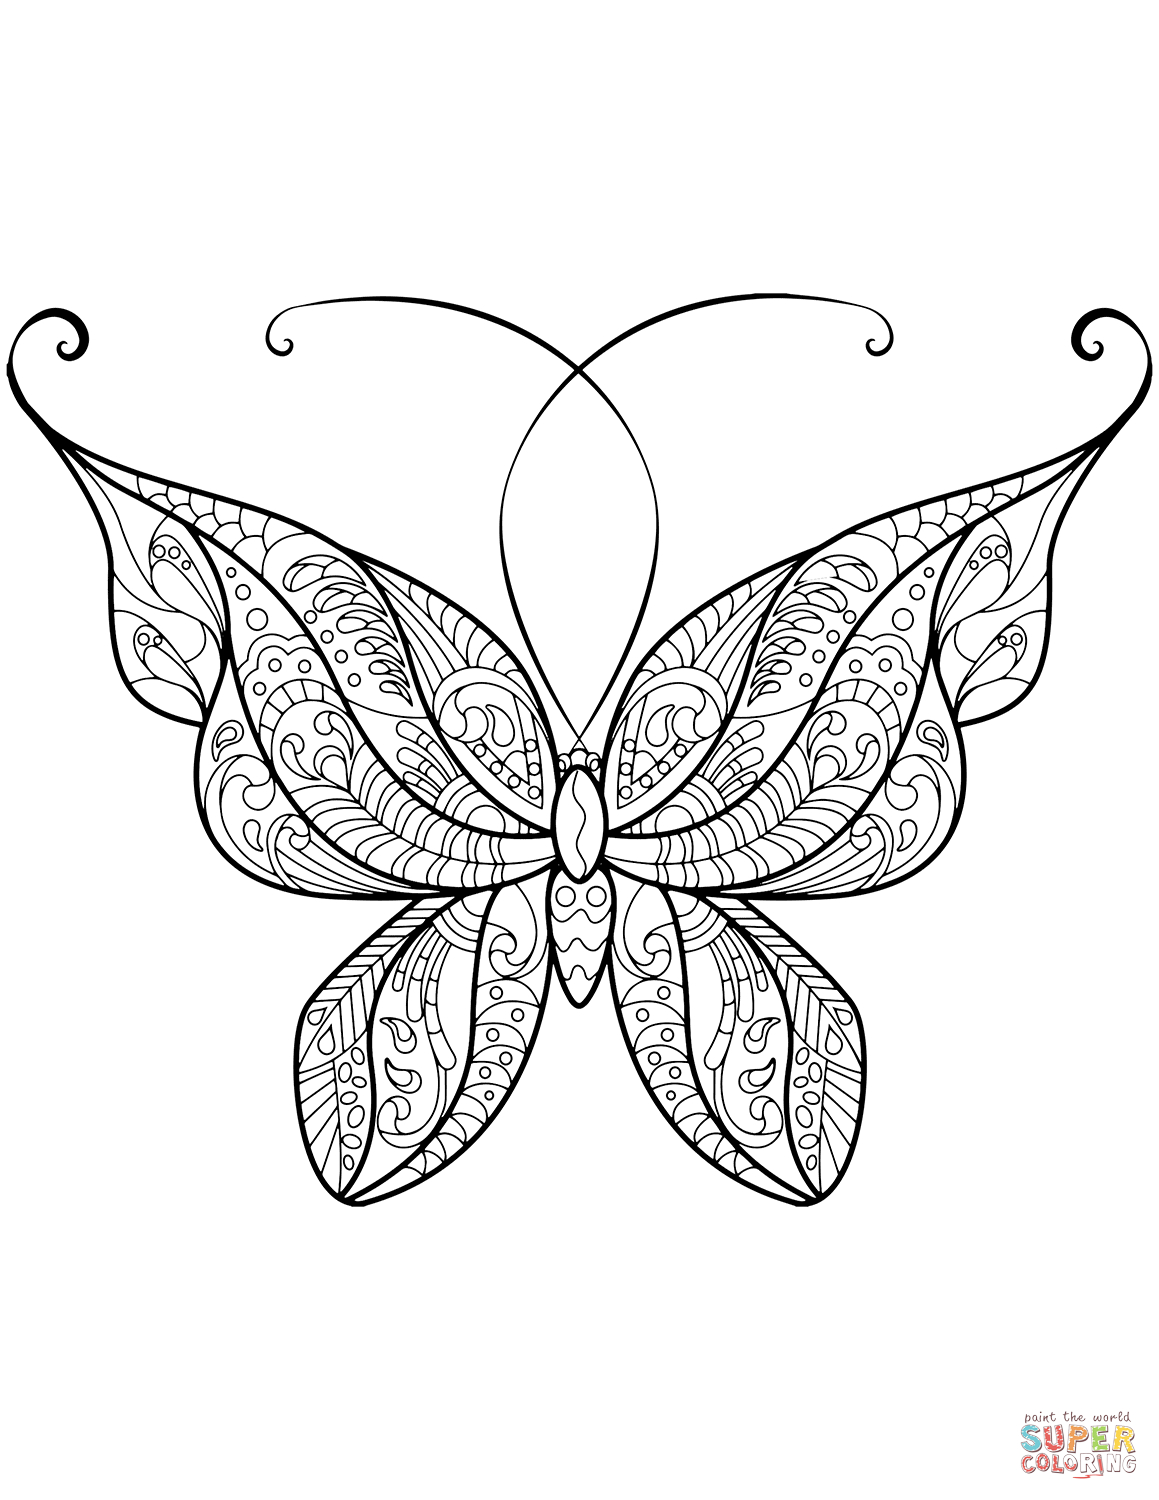 Zentangle Butterfly Coloring Page | Free Printable Coloring Pages - Free Printable Butterfly Coloring Pages